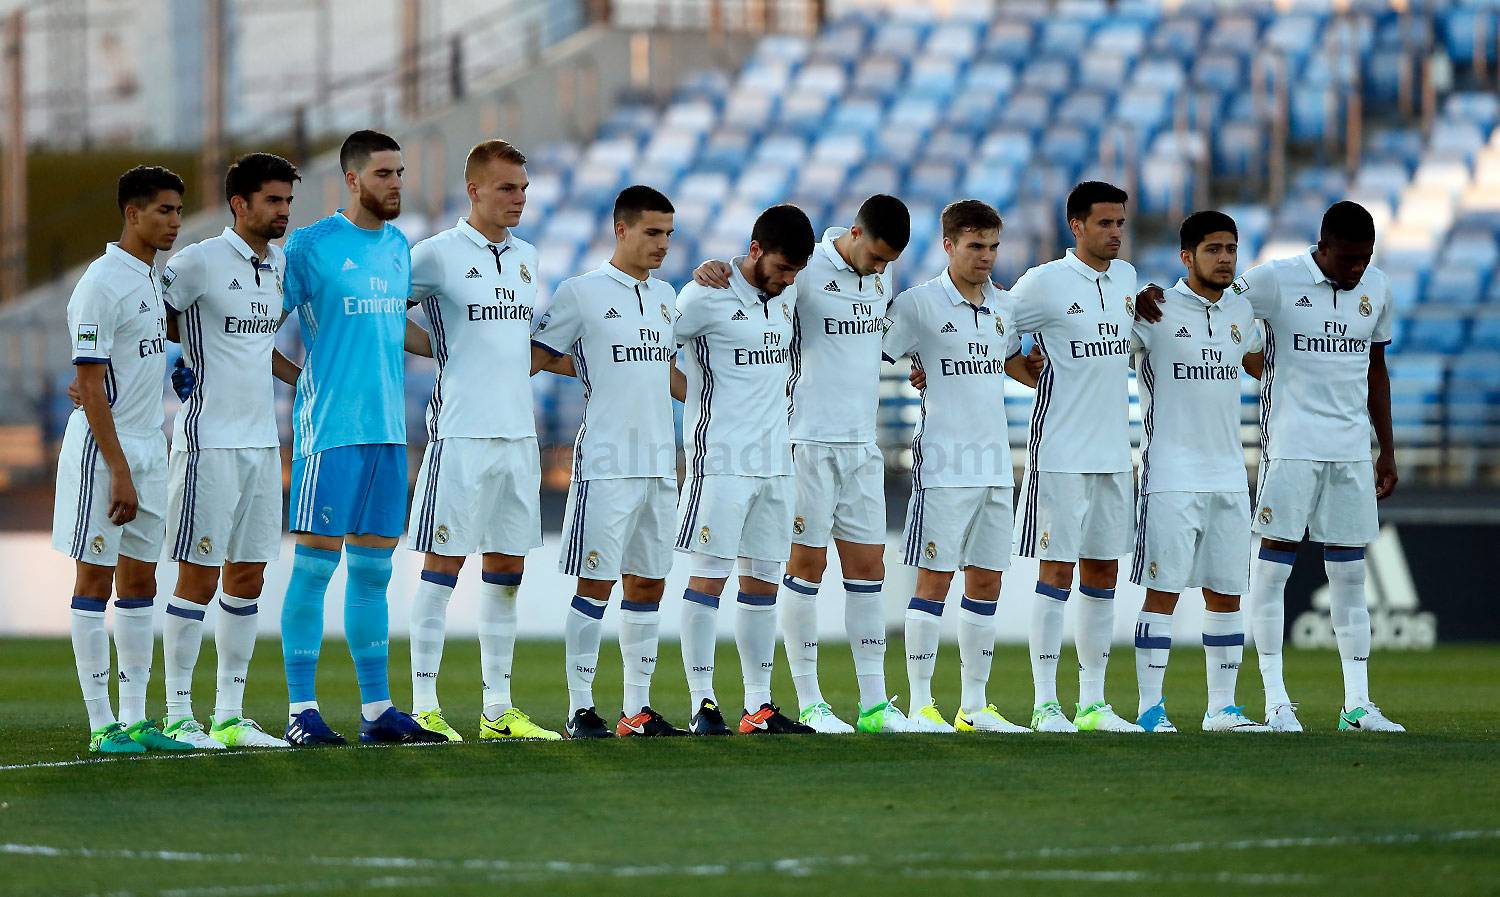 Real Madrid - Real Madrid Castilla - Arenas Club - 08-04-2017